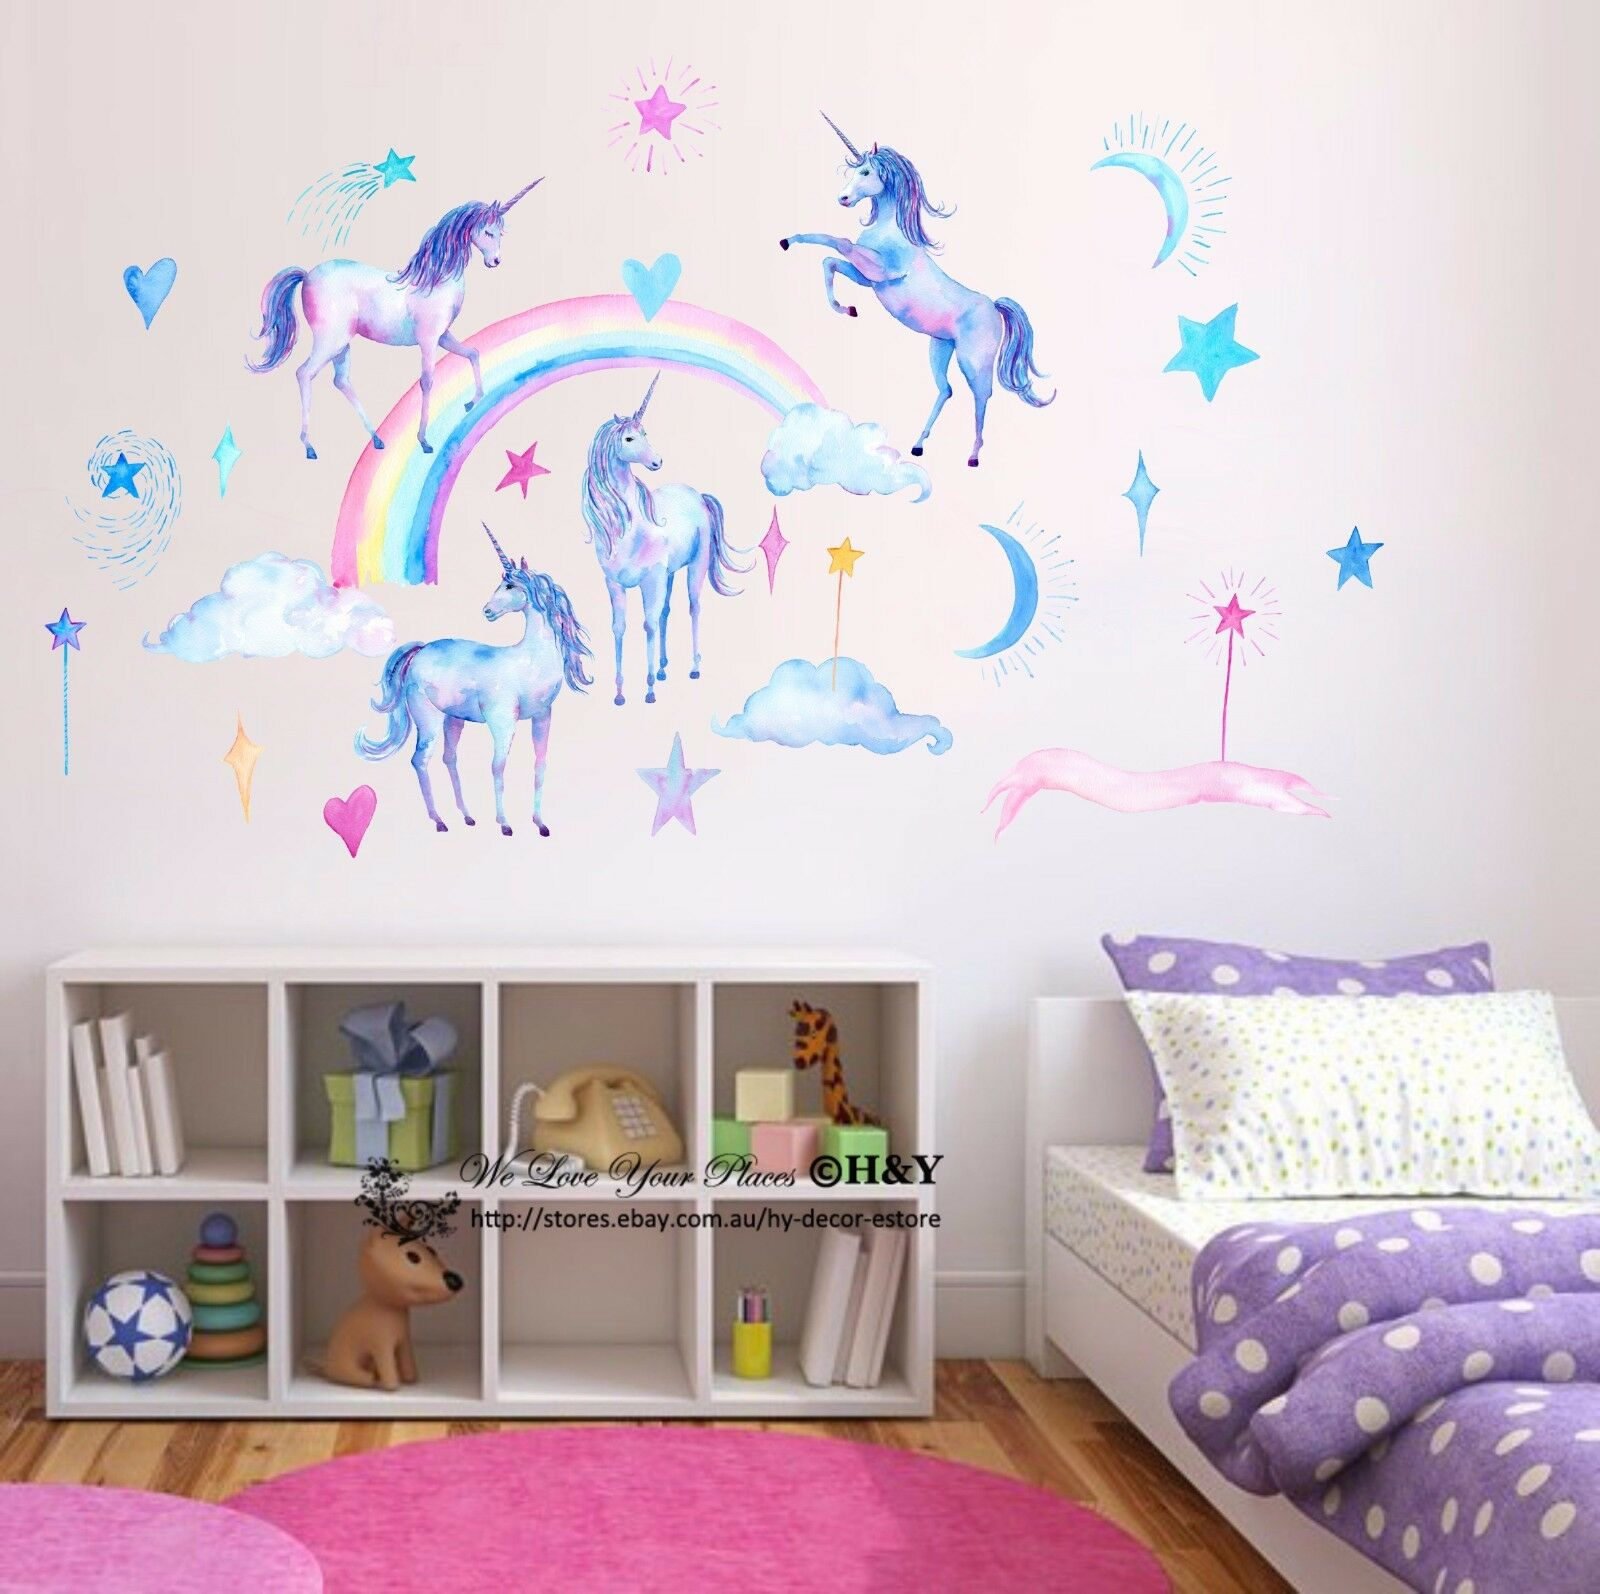 Unicorn Rainbow Cloud Star Heart Wall Decal Removable Sticker Kids Nursery Decor 1 Of 5only 5 Available See More